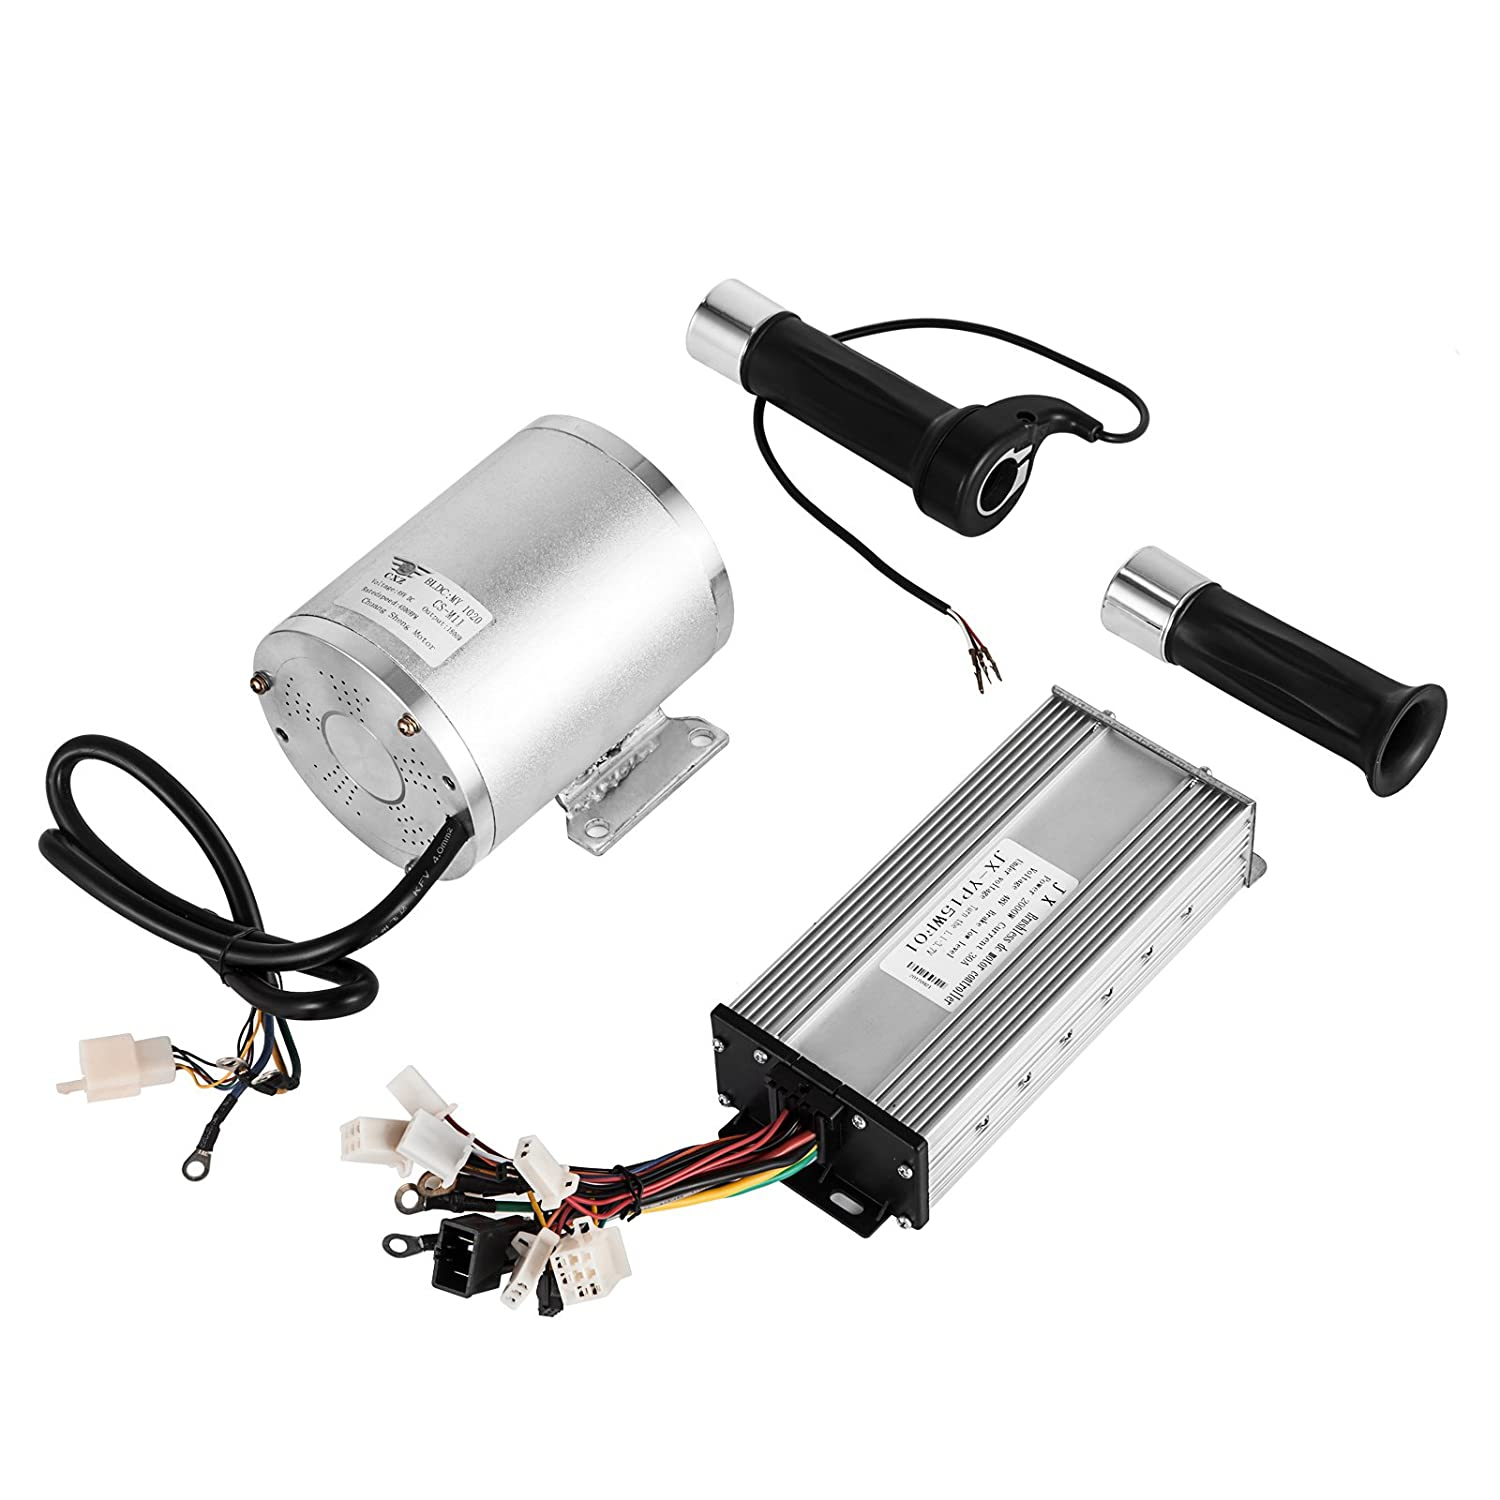 Mophorn 1800w Electric Brushless Dc Motor Kit 48v High Razor 650 Wiring Diagram Speed With 32a Controller And Throttle Grip For Go Karts E Bike